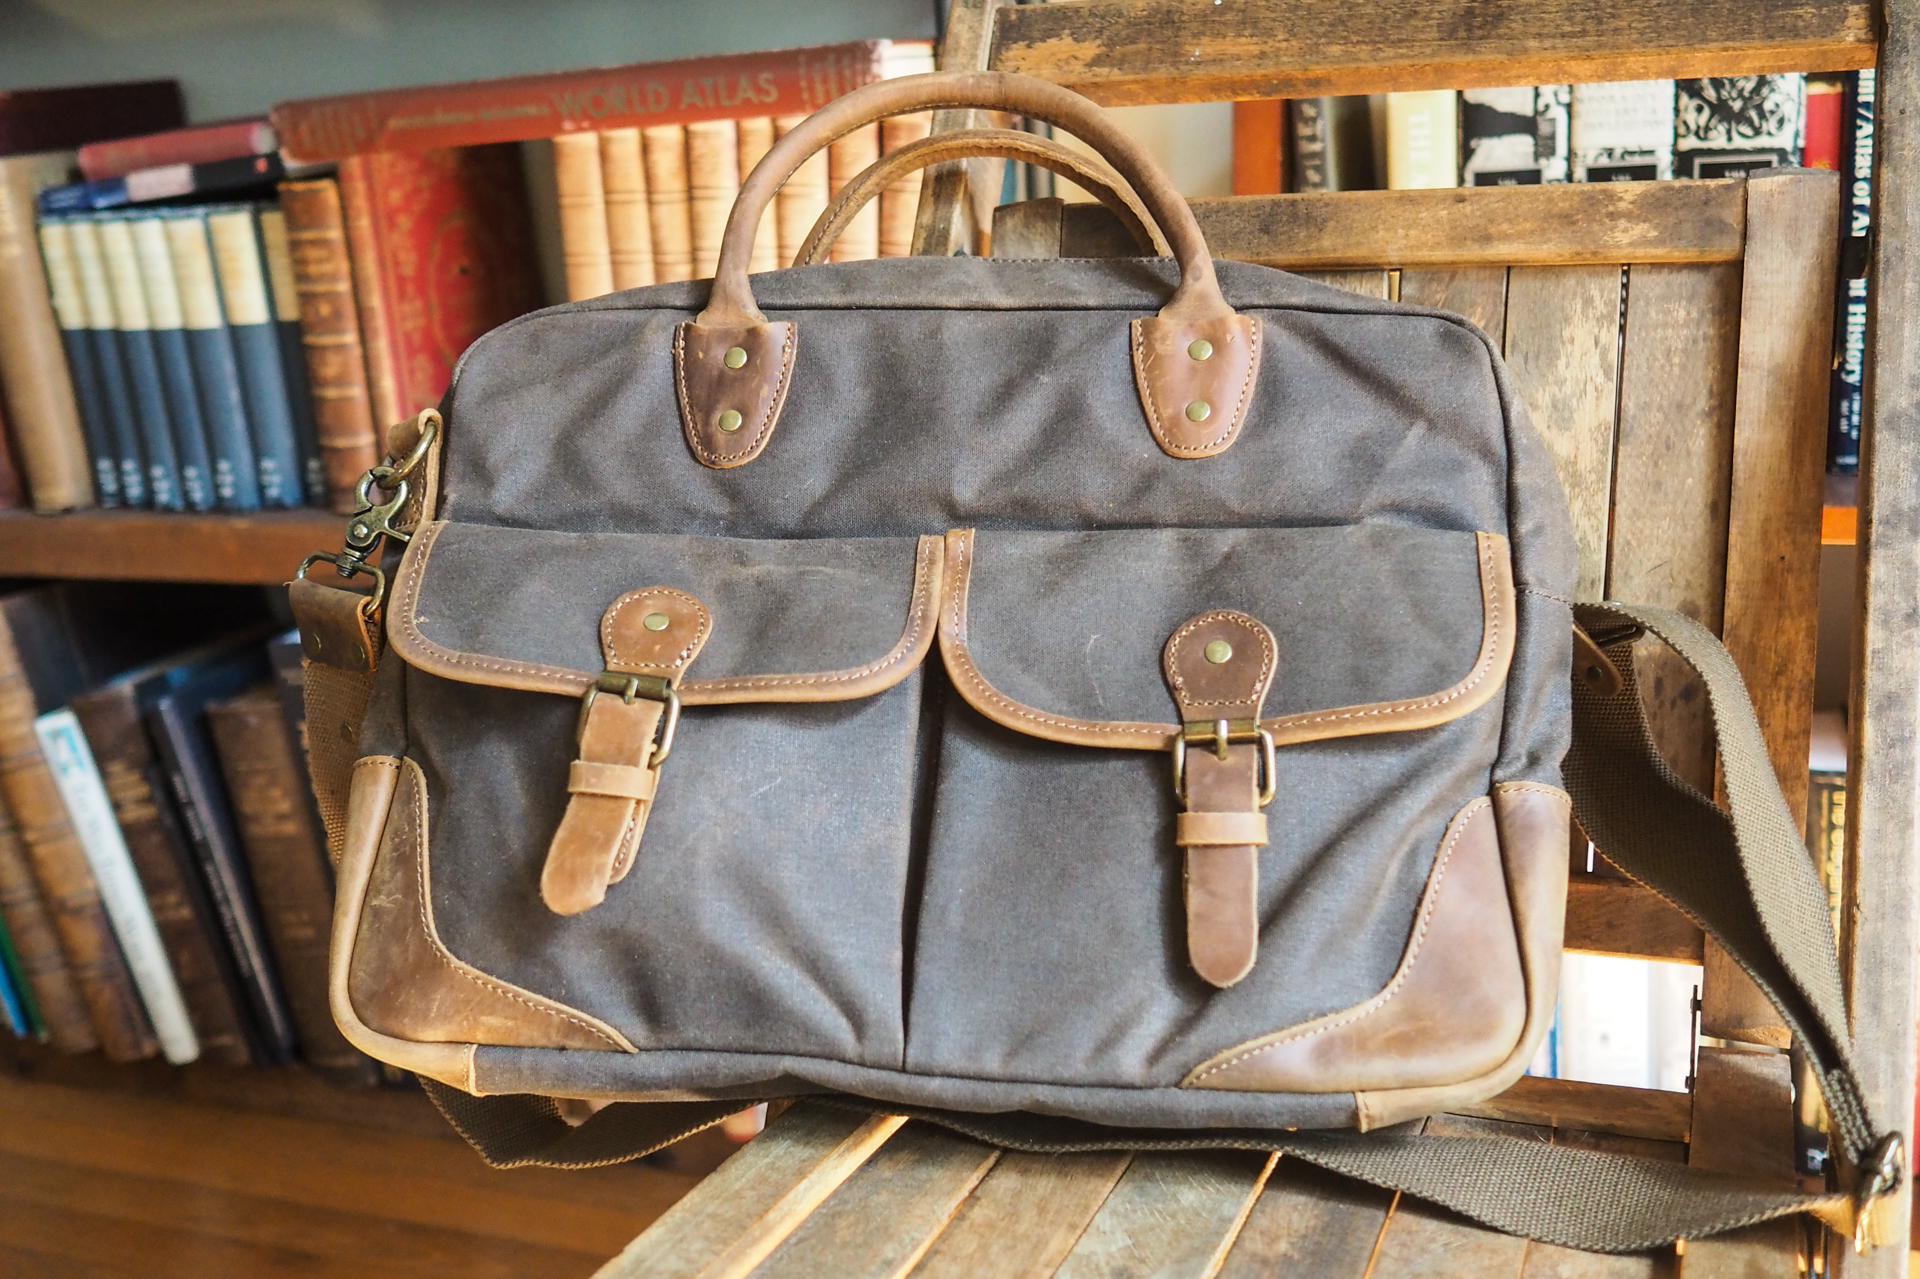 Bag Week 2018: Waxed canvas bags from Filson, Ona, Croots and more